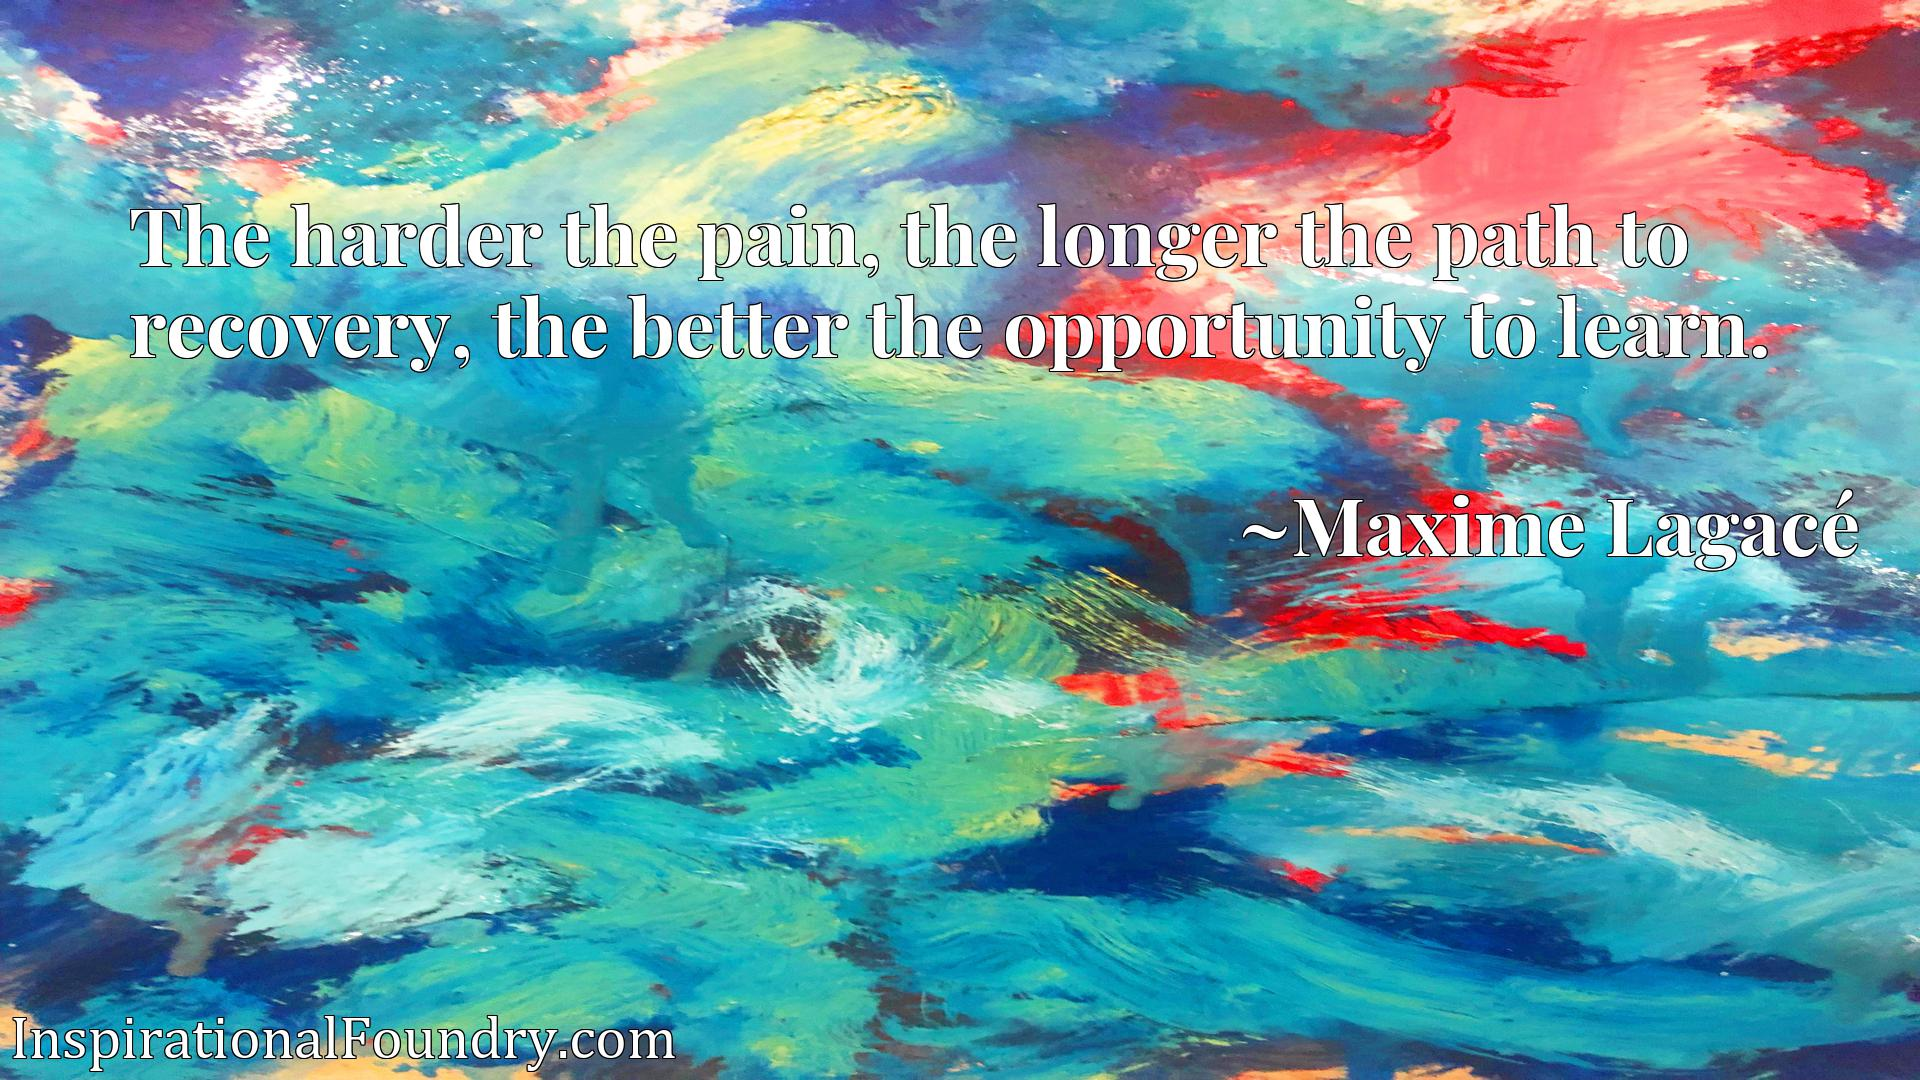 The harder the pain, the longer the path to recovery, the better the opportunity to learn.